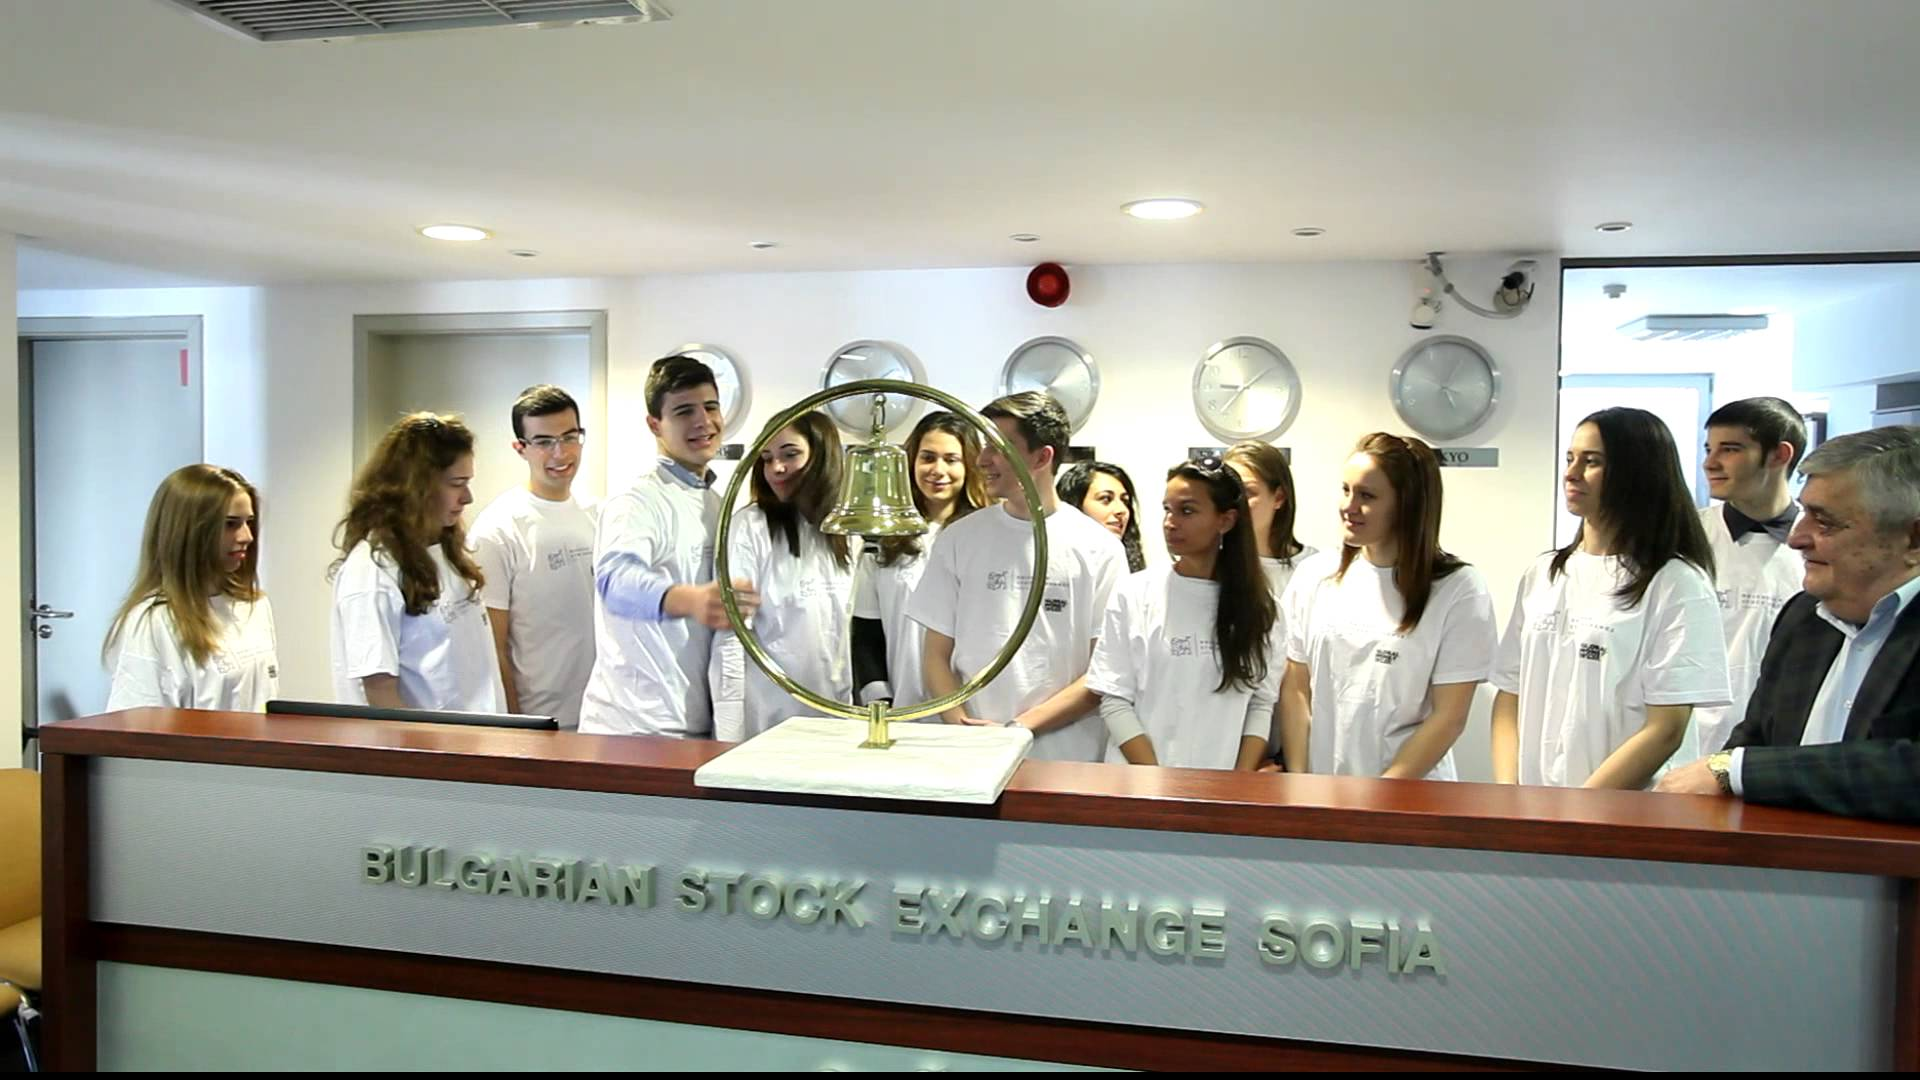 Bulgarian Stock Exchange - Sofia celebrates 2016 Global Money Week ...